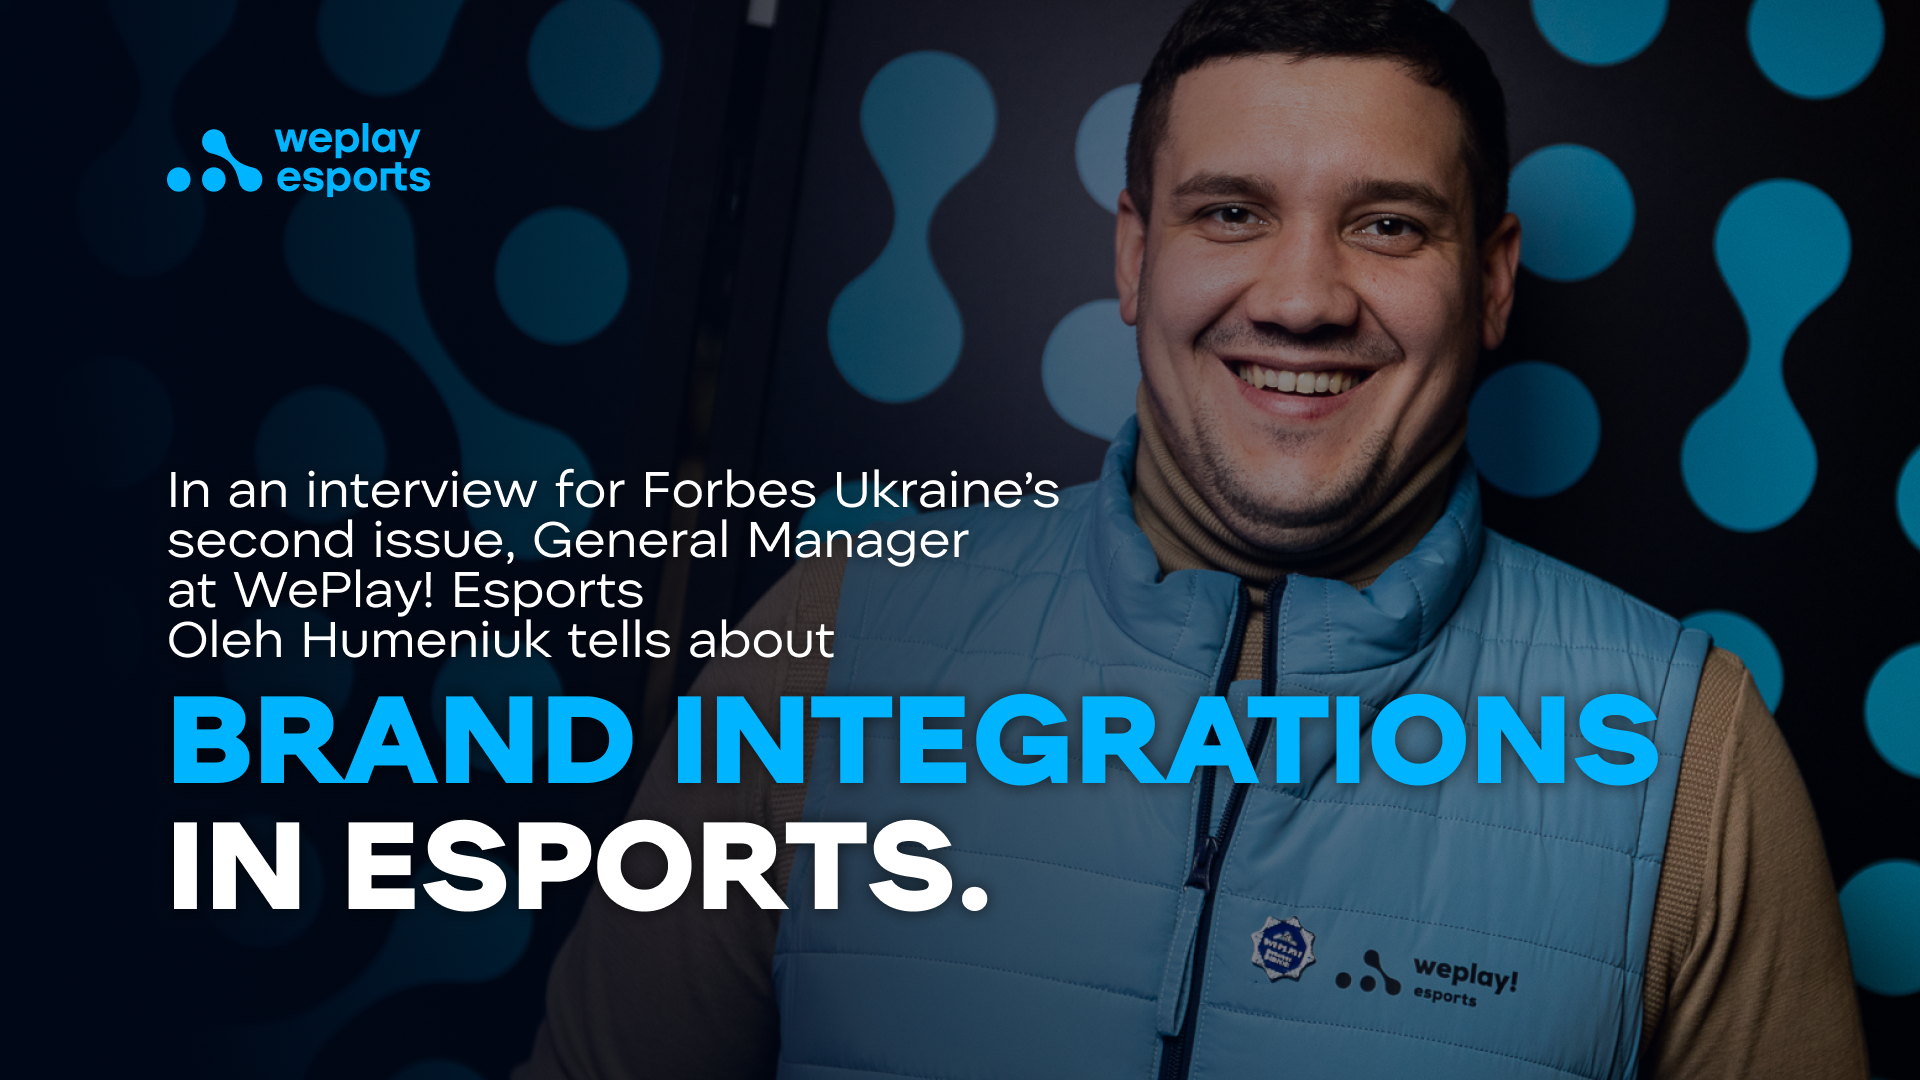 In an interview for Forbes Ukraine's second issue, General Manager at WePlay! Esports Oleh Humeniuk tells about brand integrations in esports.